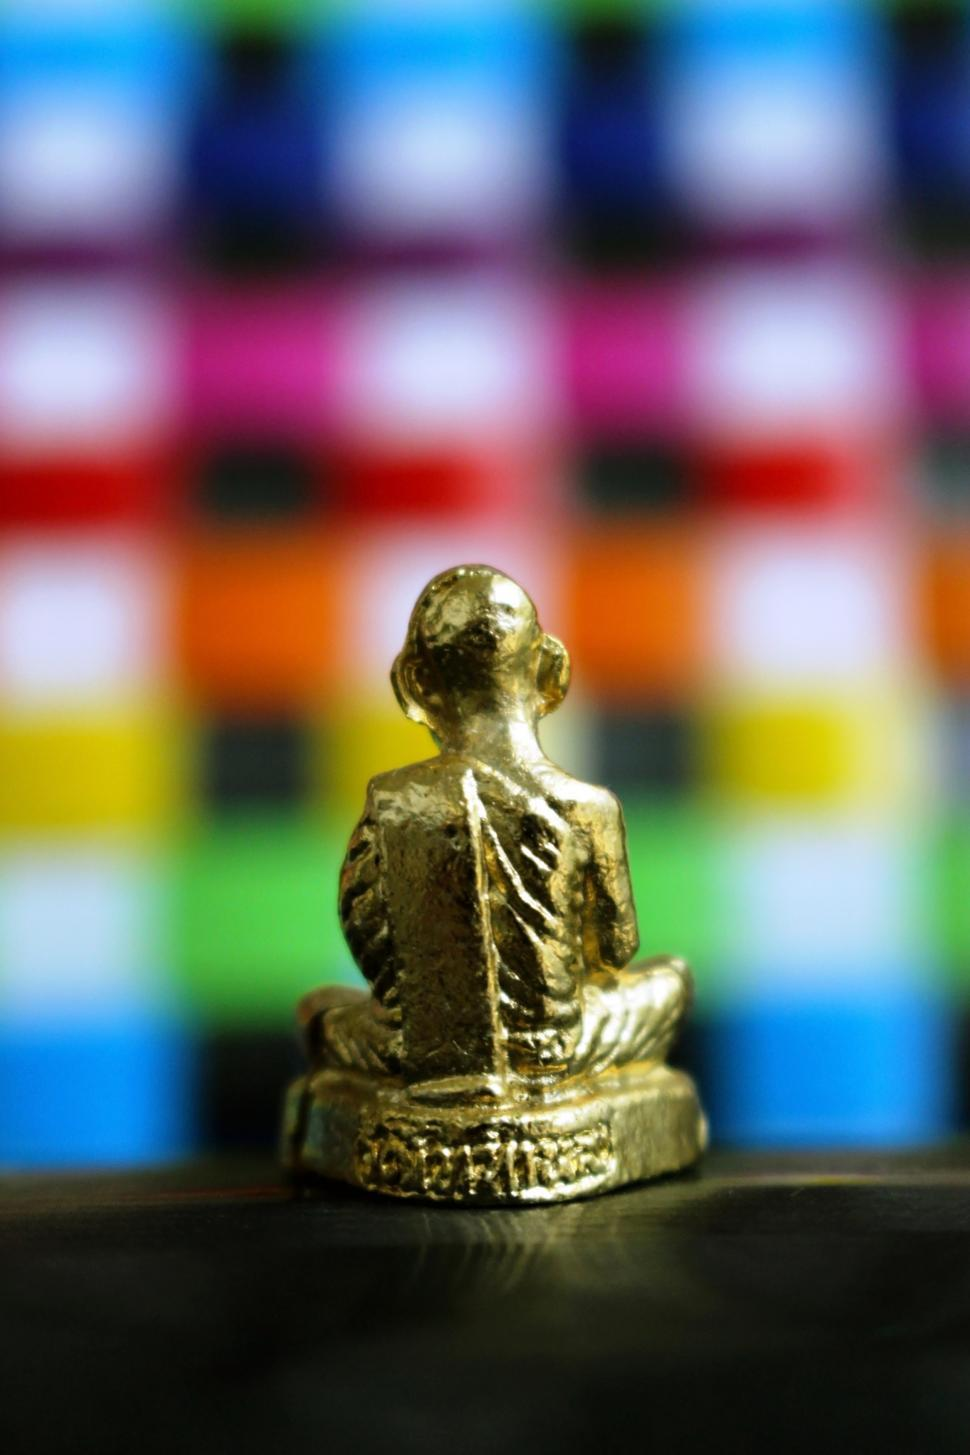 Download Free Stock Photo of Golden Buddha Statue